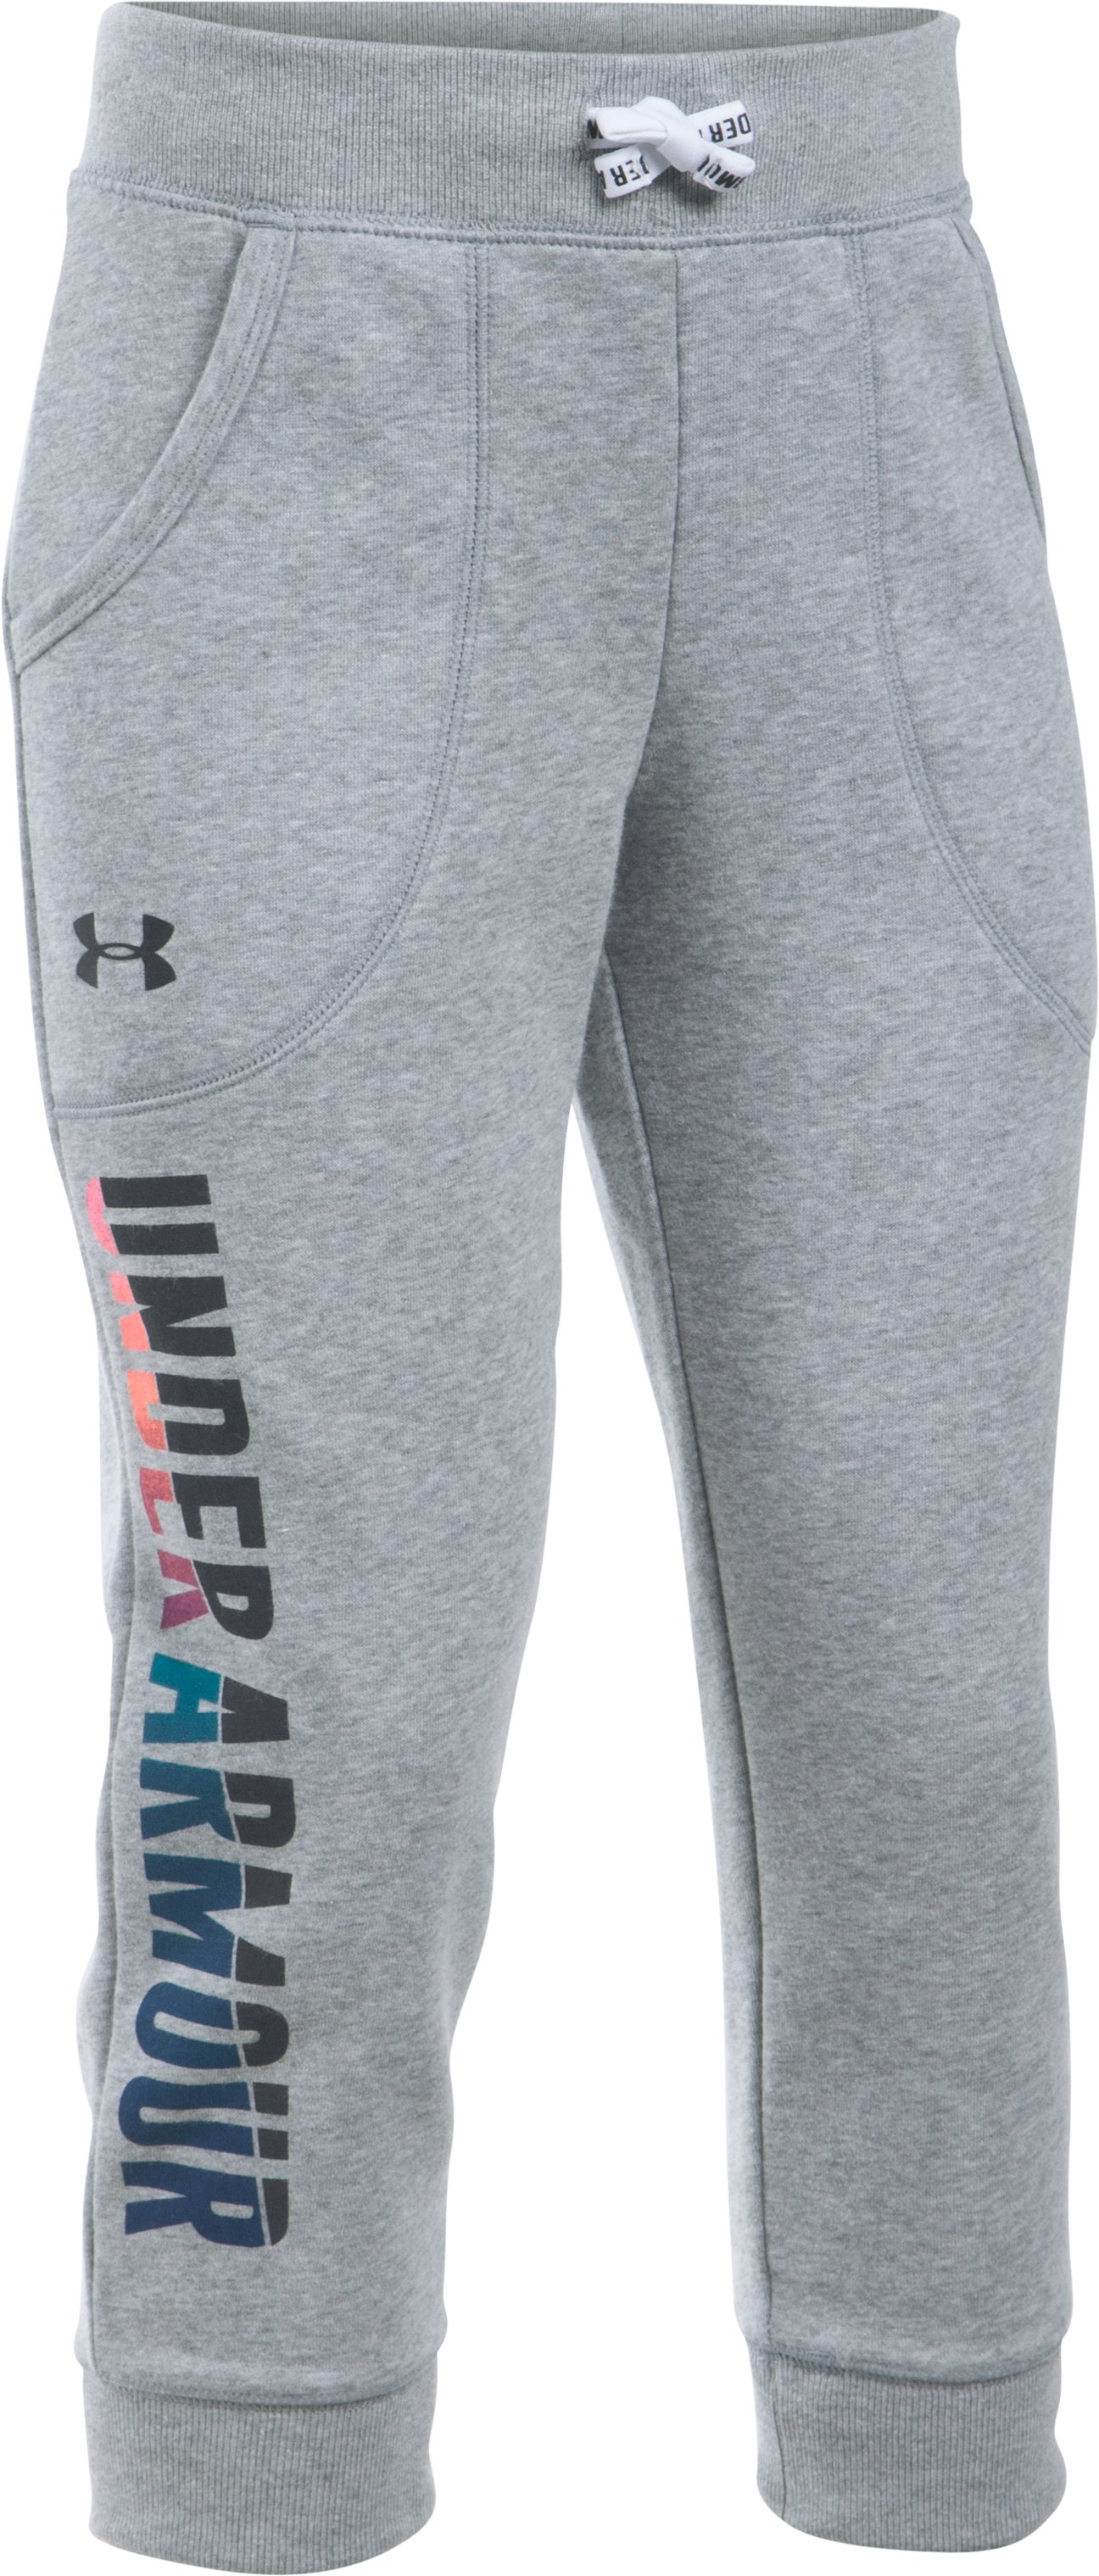 Girls' UA Favorite Fleece Capri, True Gray Heather